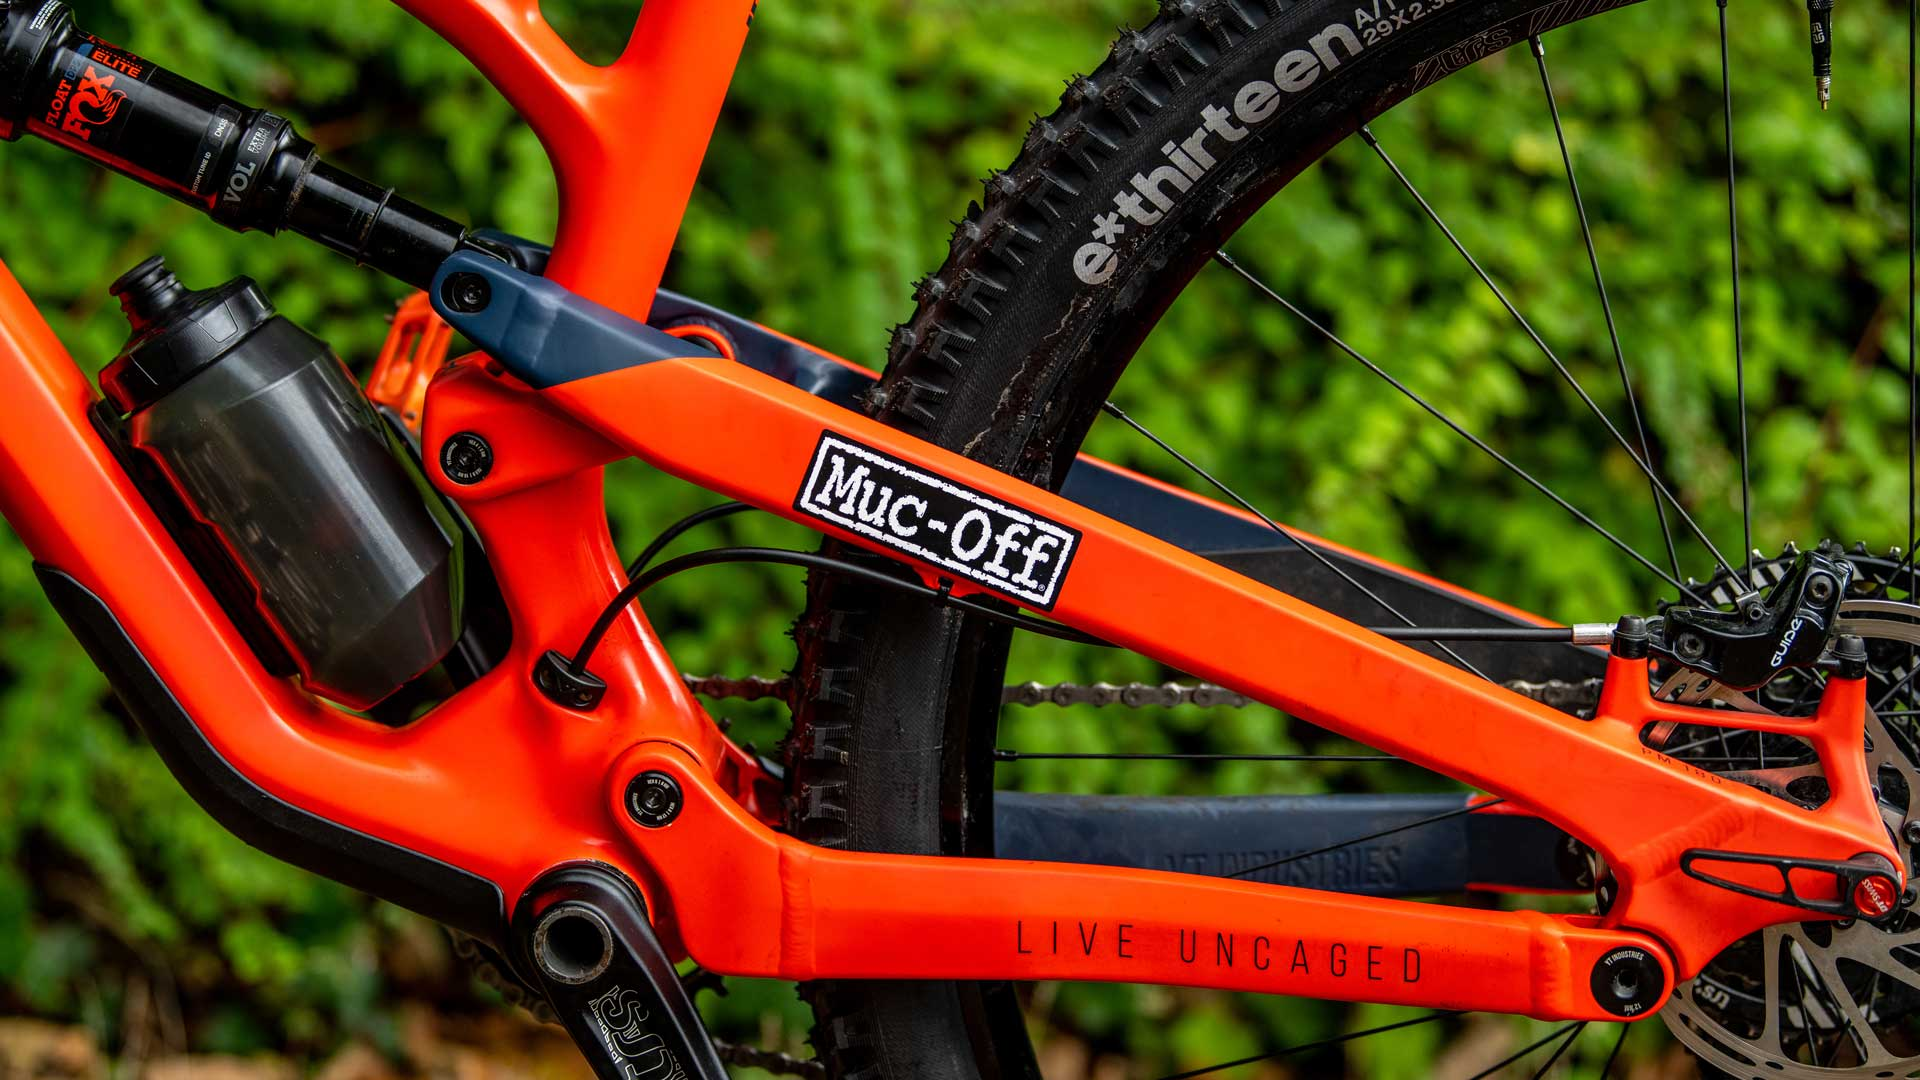 Black and white muc-off sticker on orange bike frame